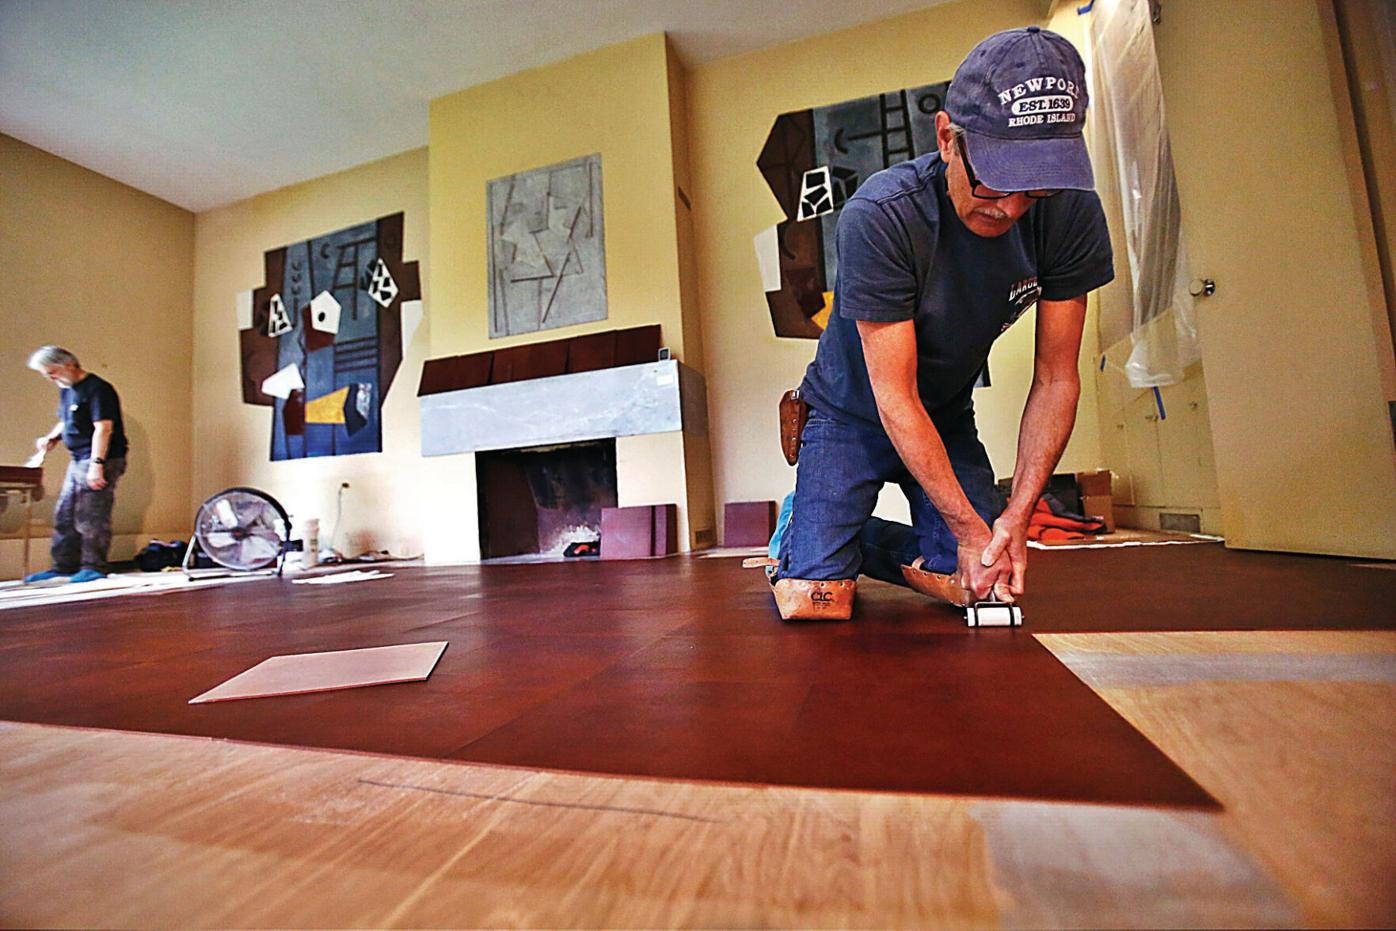 Frelinghuysen Morris House and Studio: 'Replacing a leather floor isn't easy'